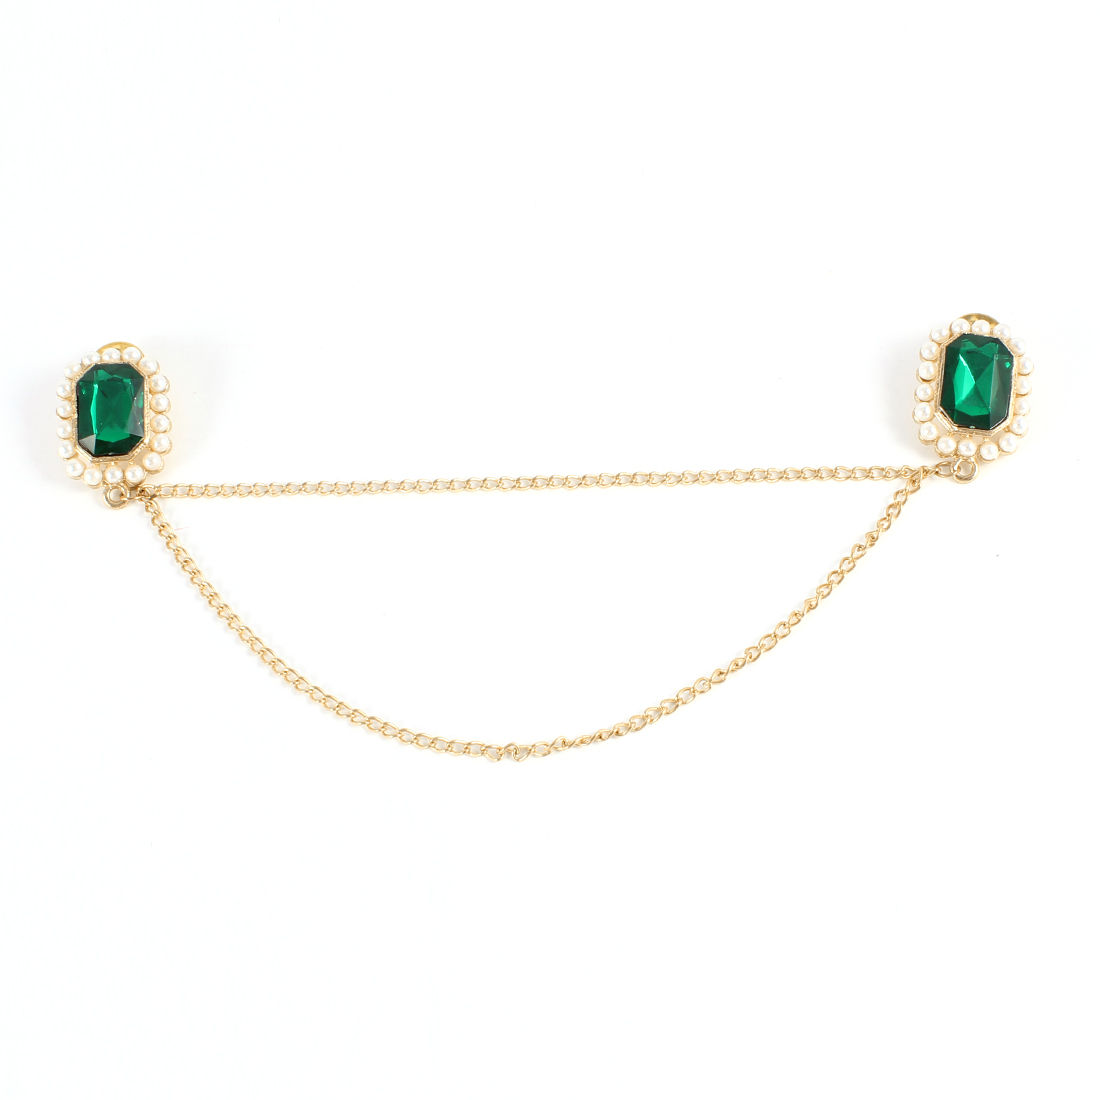 Green Plastic Faceted Crystal Decor Gold Tone Chain Collar Pin Brooch